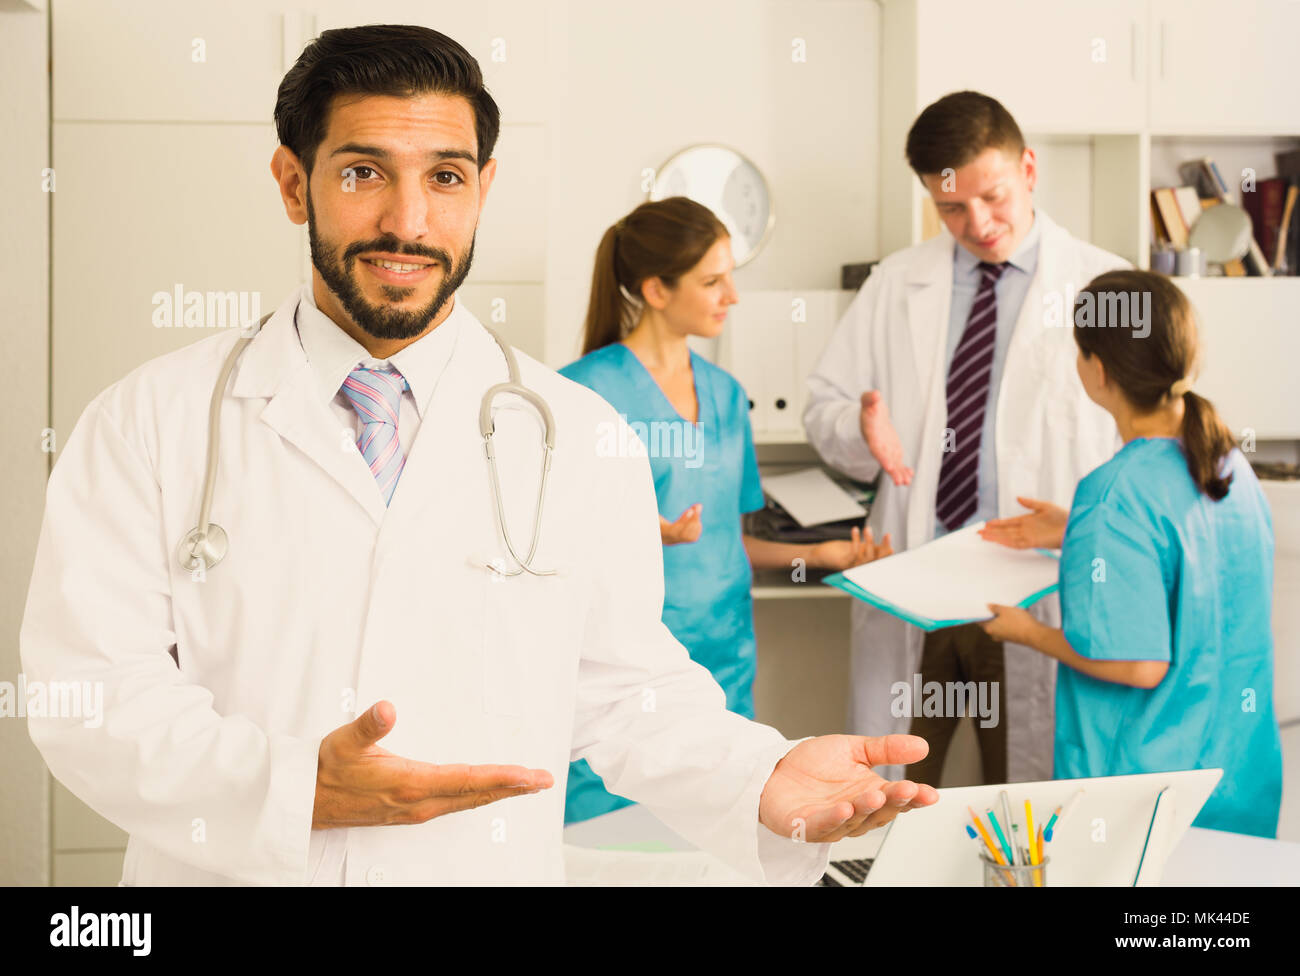 Experienced smiling male doctor welcoming patient to clinic - Stock Image